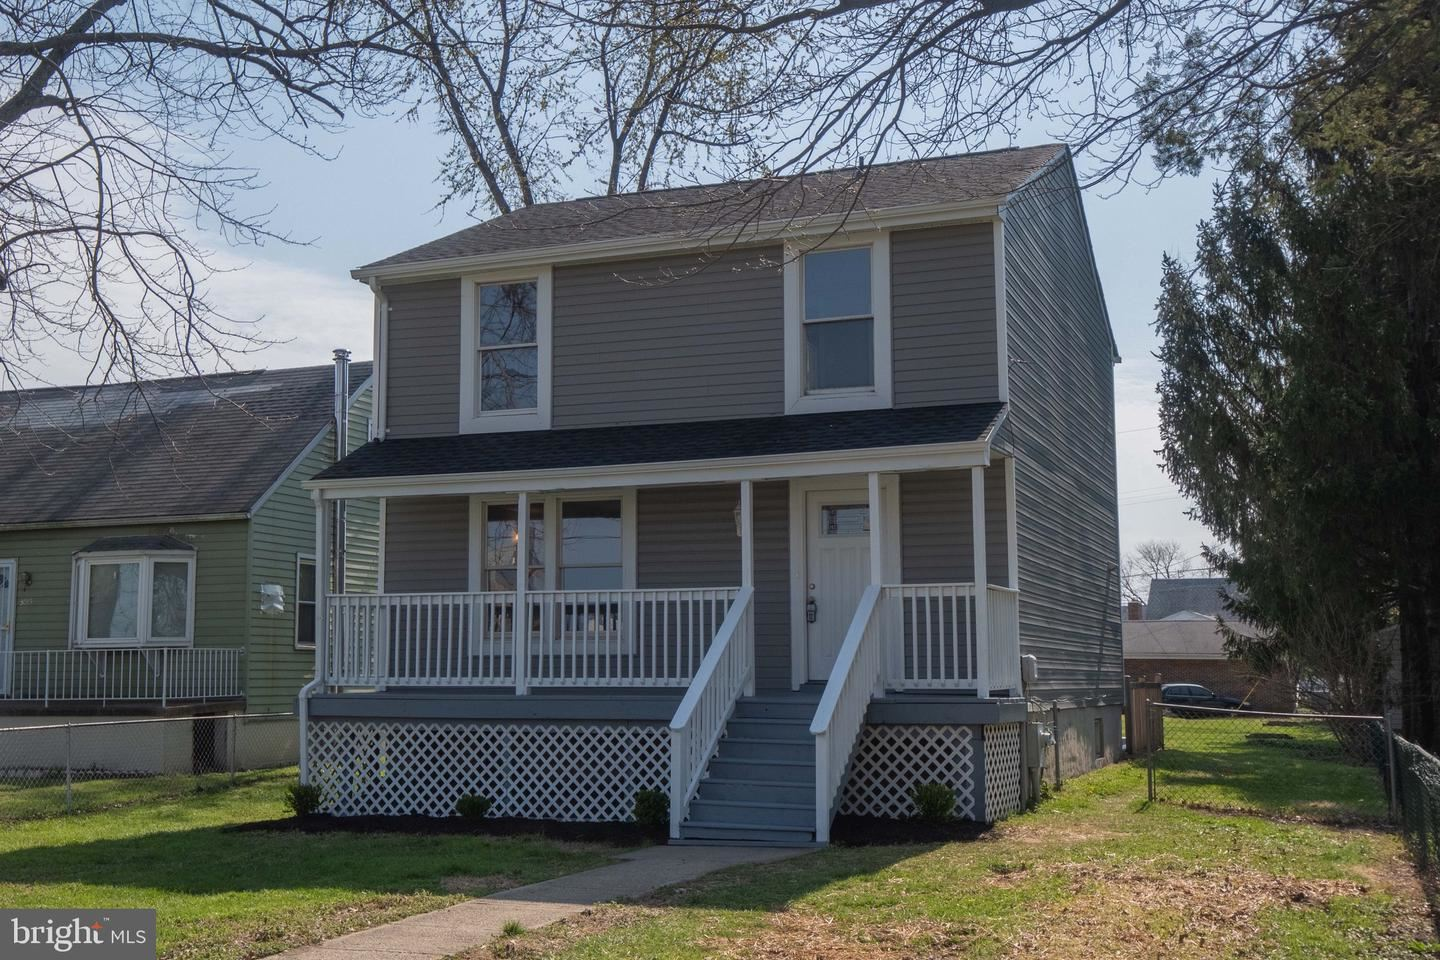 3013 ROSS AVE, Sparrows Point, MD 21219 - MLS#: MDBC524952